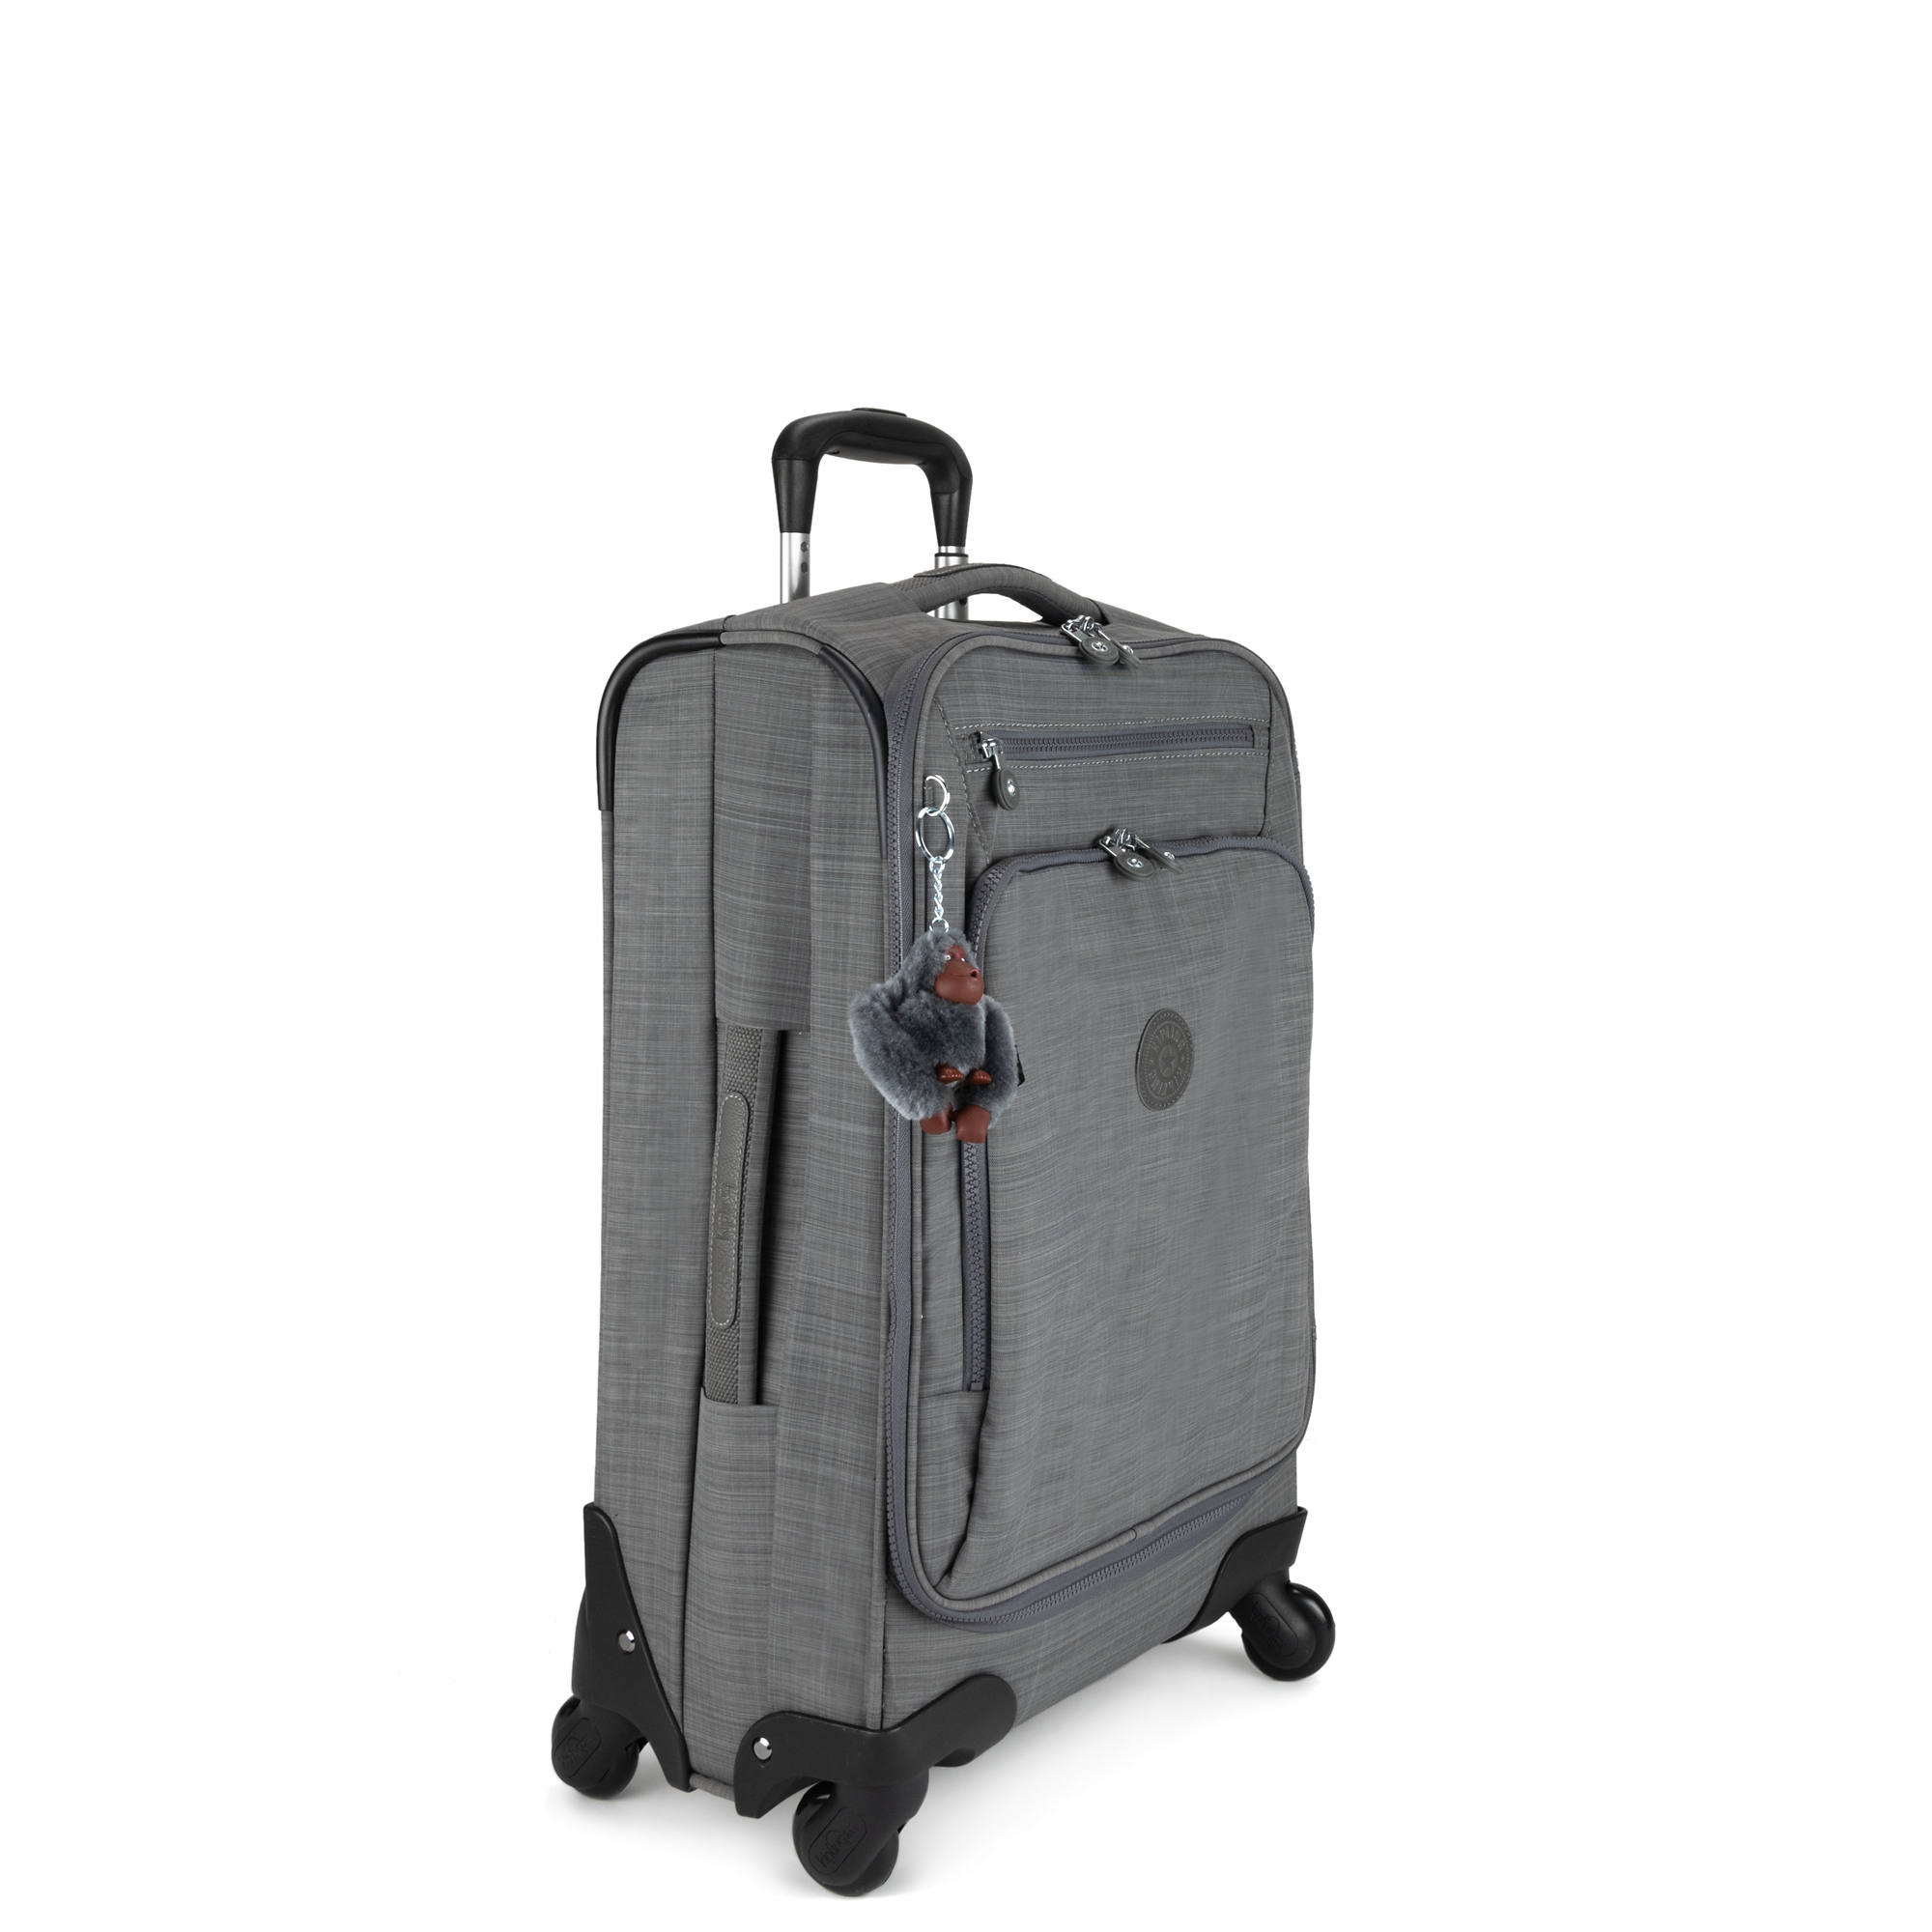 6d97c88cb0f Youri Spin 55 Small Luggage,Dusty Grey Dazz,large